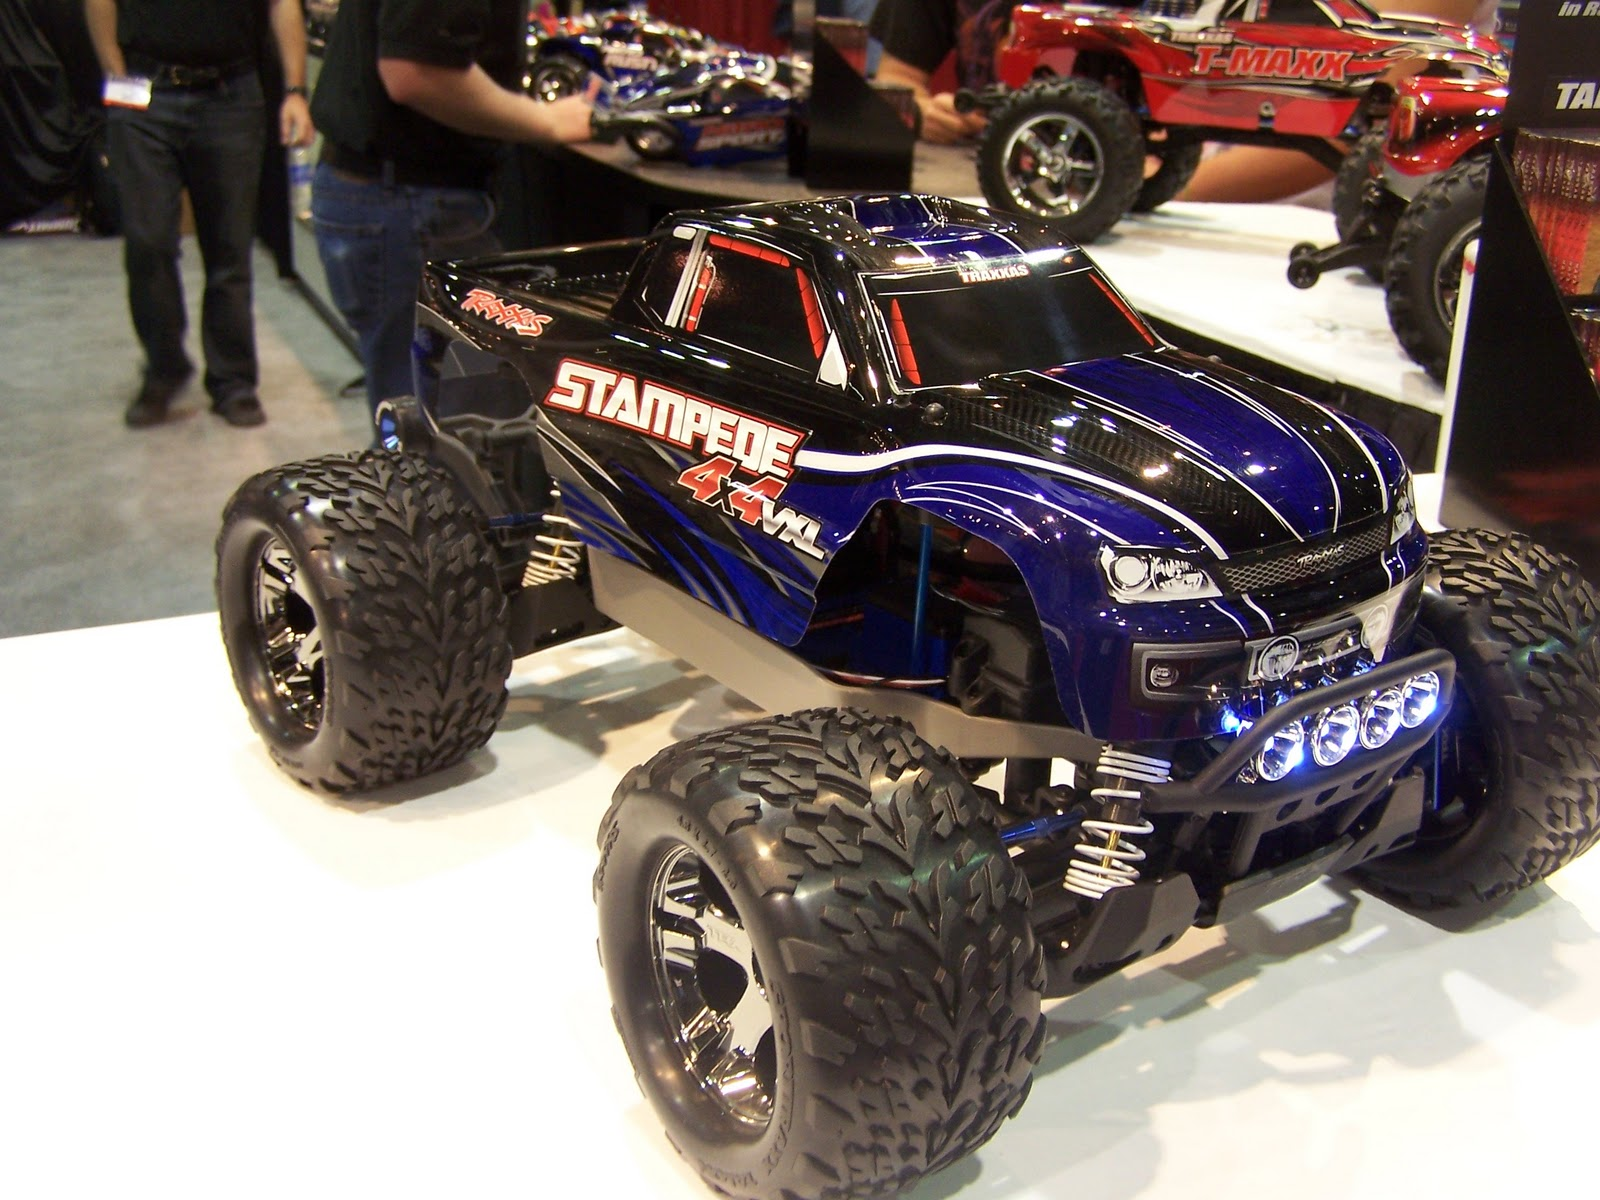 Traxxas 4X4 Stampede New release no body was expecting was a 4 wheel drive monster truck from traxxas This truck feturs a VXL brushless system and a